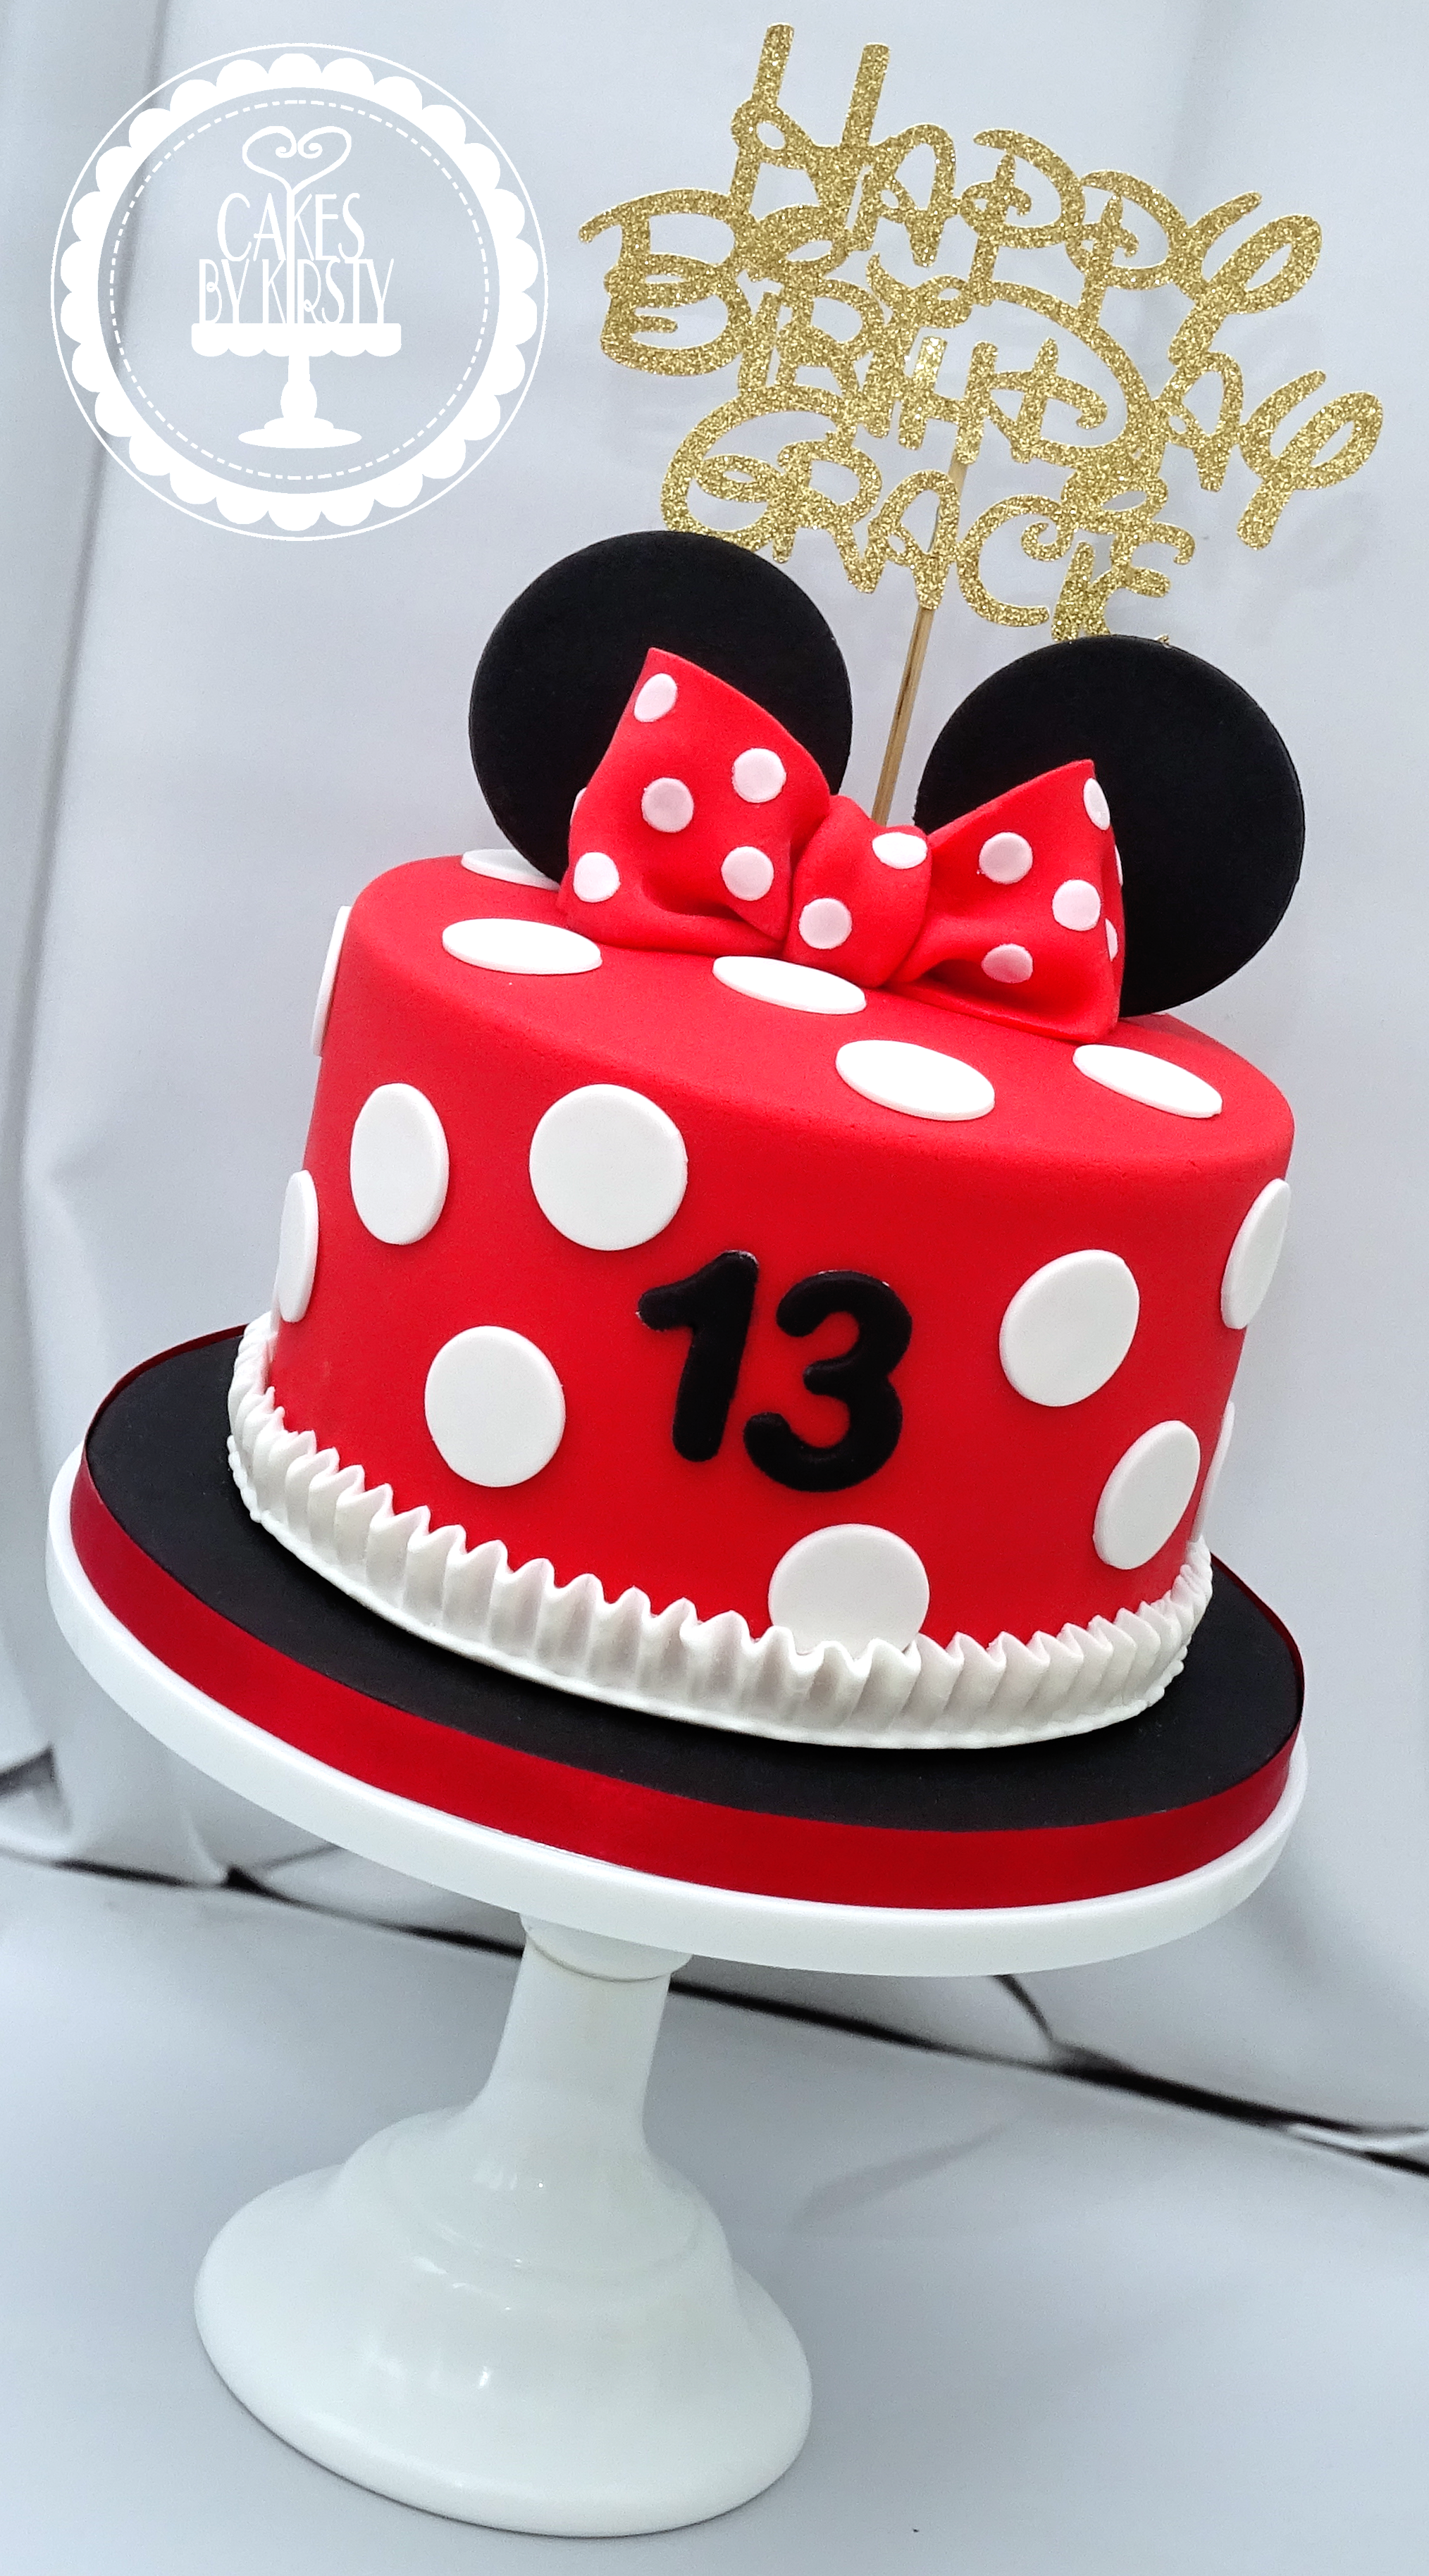 Remarkable Cakes By Kirsty Childrens Cakes Funny Birthday Cards Online Eattedamsfinfo